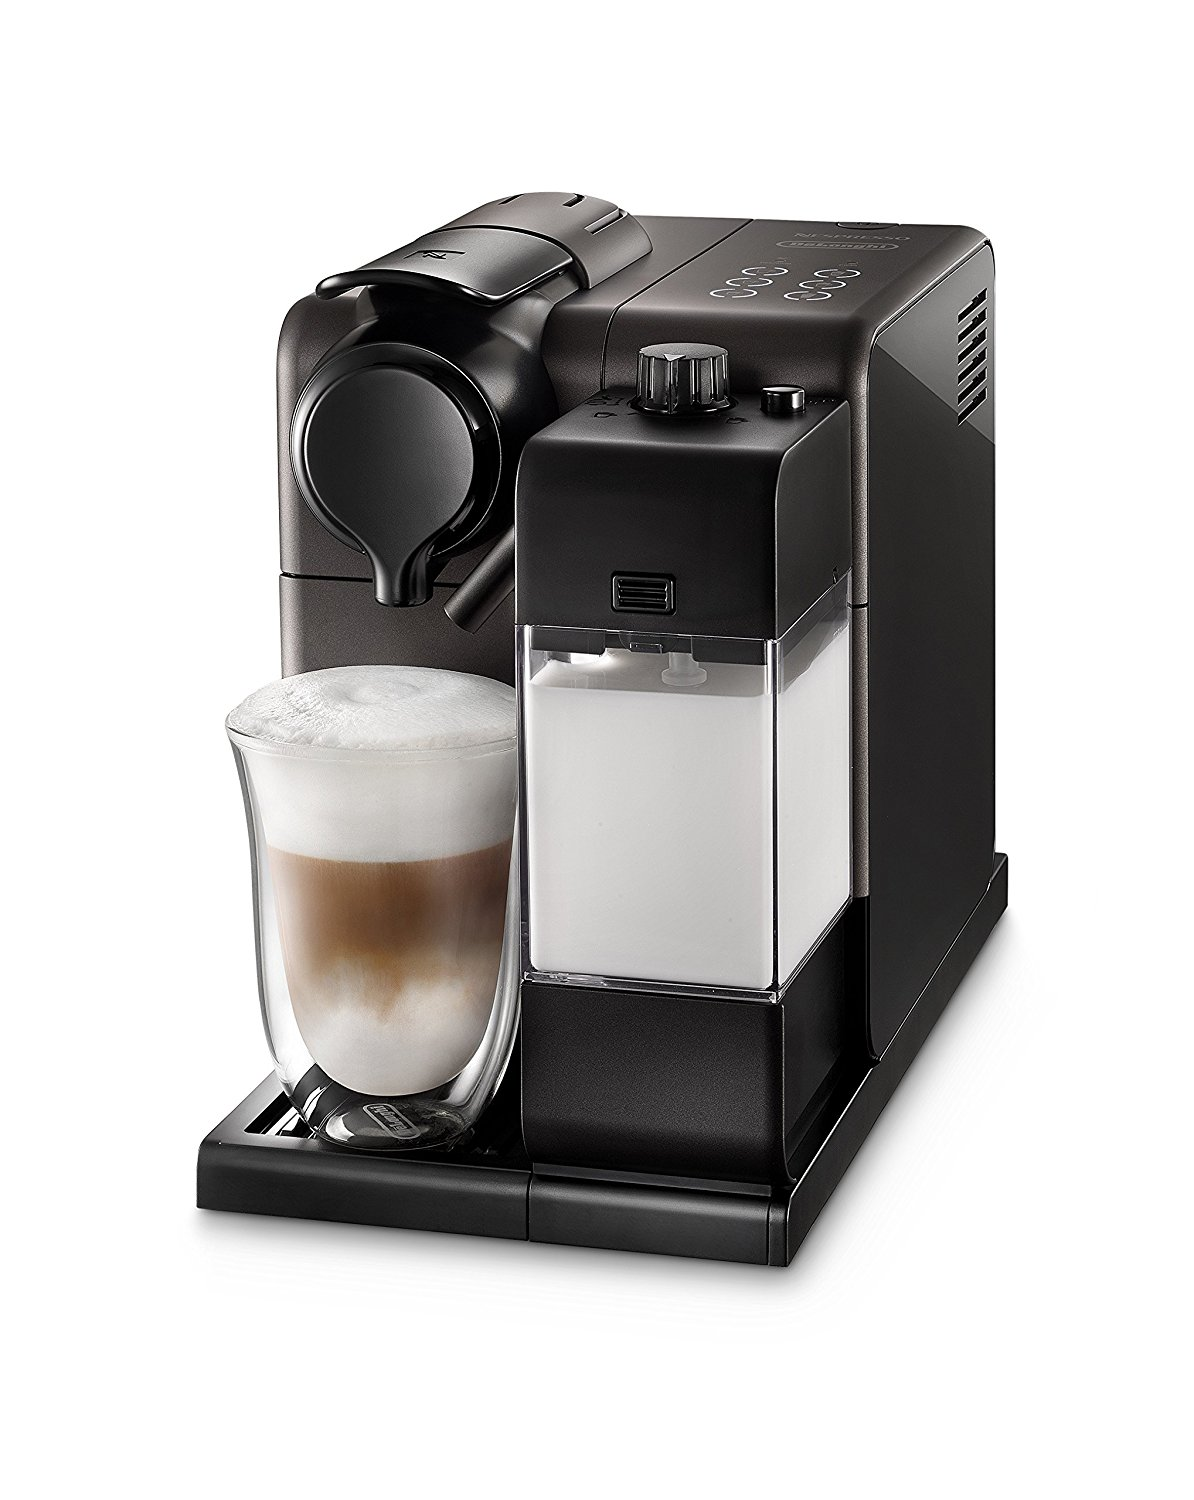 Review of Nespresso Lattissima Touch Coffee Machine